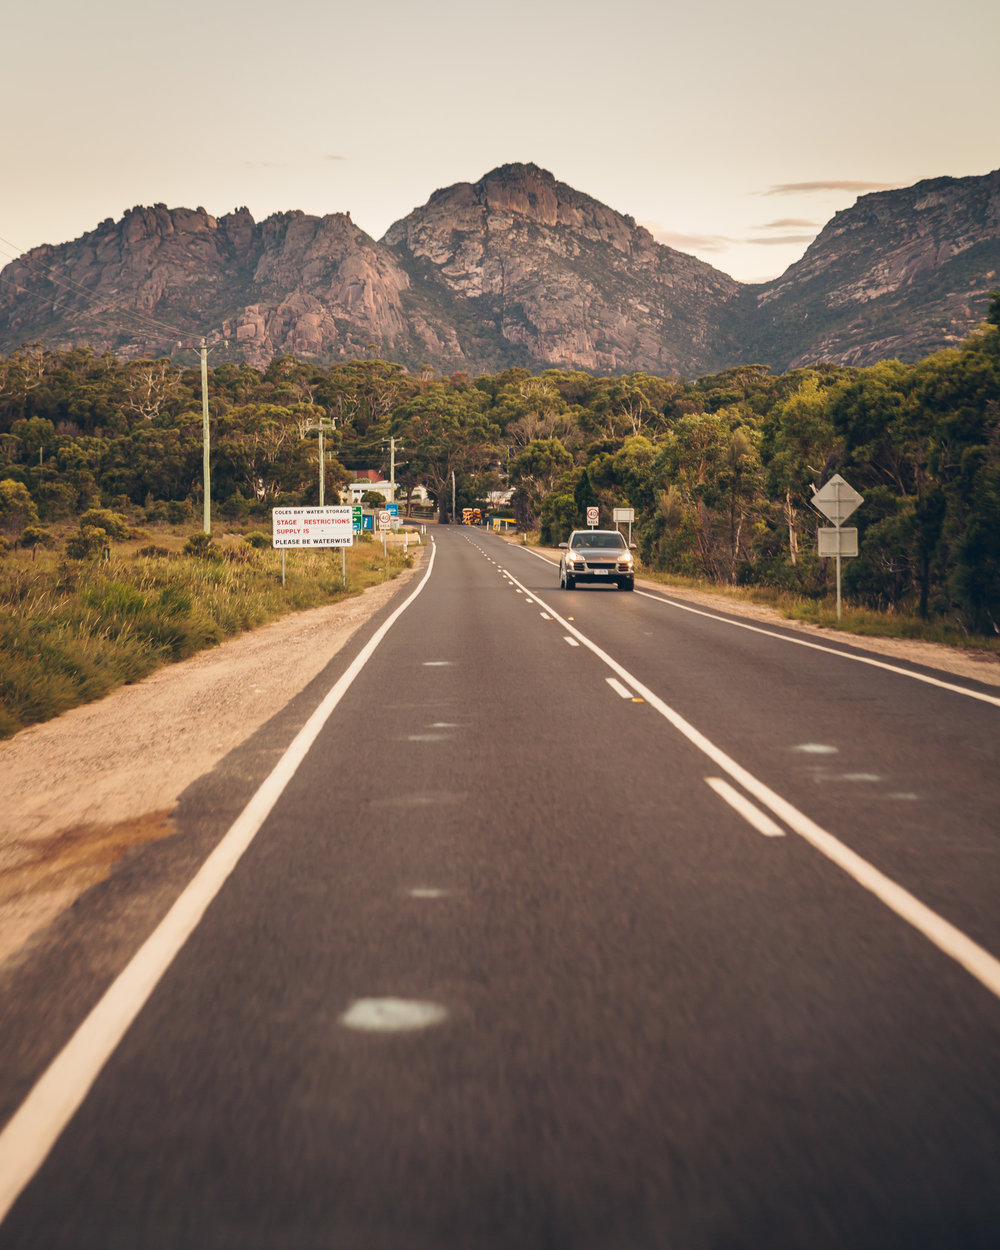 The road leading into Freycinet National Park, at sunset